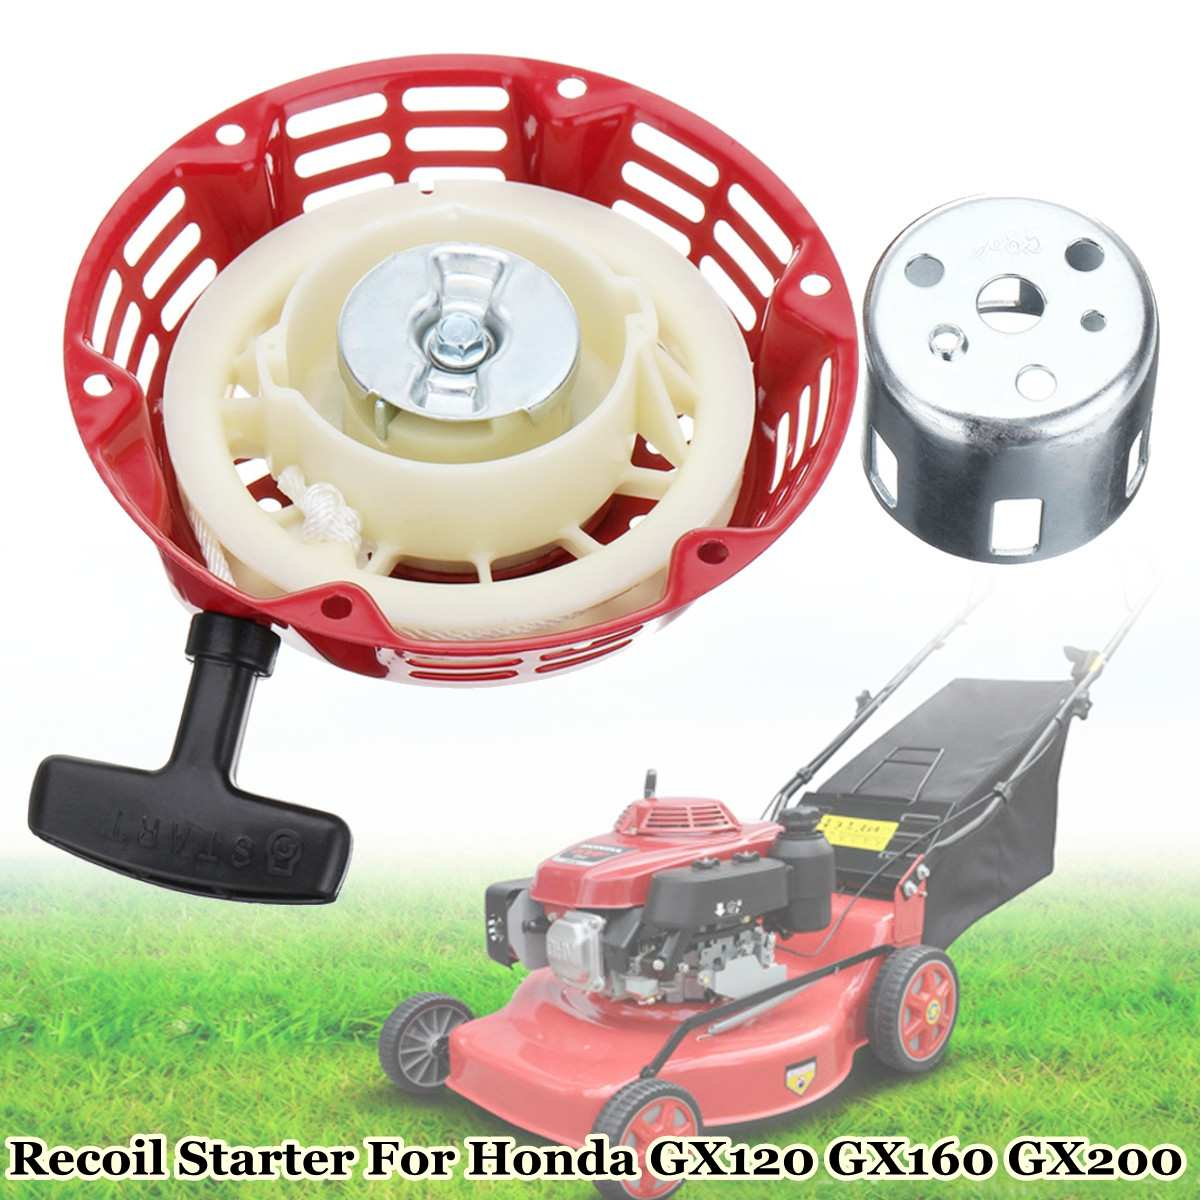 Pull Starter Recoil Start Flange Cup Set For Honda GX120/160/200 4HP 5.5 & 6.5 for HP Engines 28400-